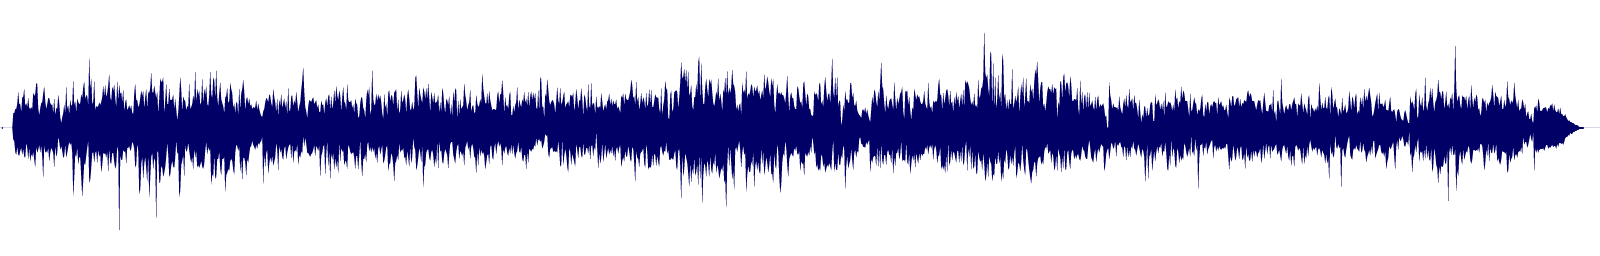 waveform of track #95235